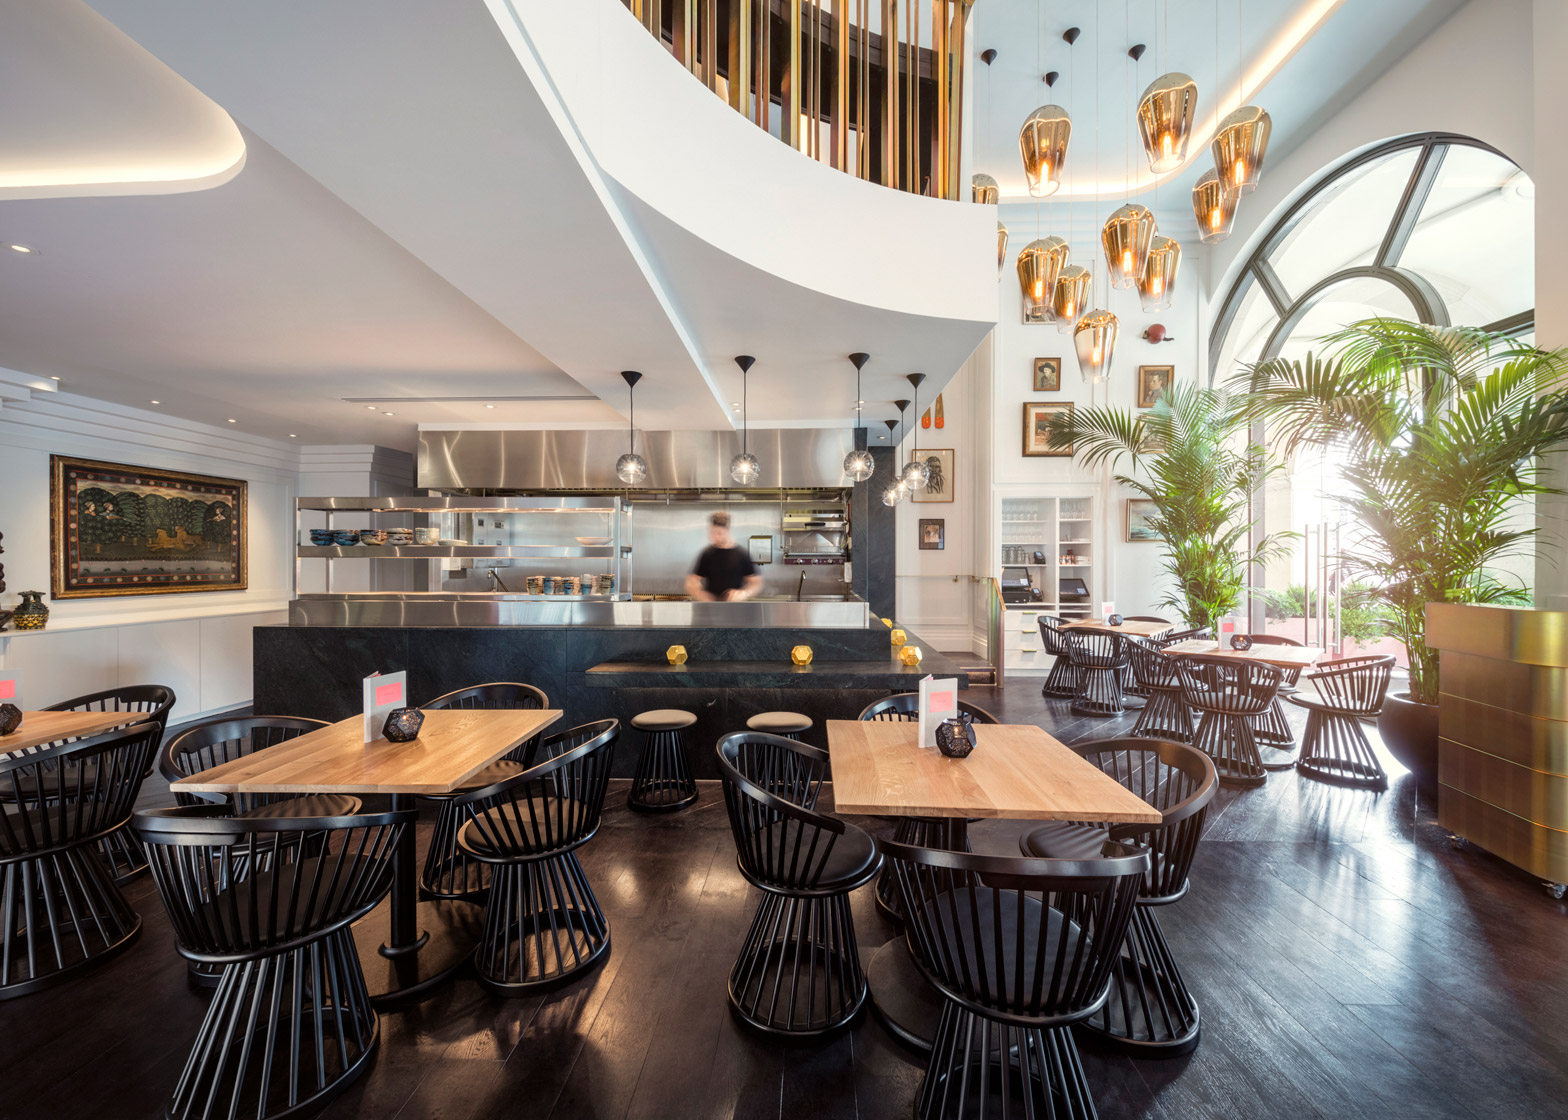 Meet The Restaurant to Eat in London with Best Lighting Designs 1 lighting design Meet The Restaurant to Eat in London with Best Lighting Designs Meet The Restaurant to Eat in London with Best Lighting Designs 8